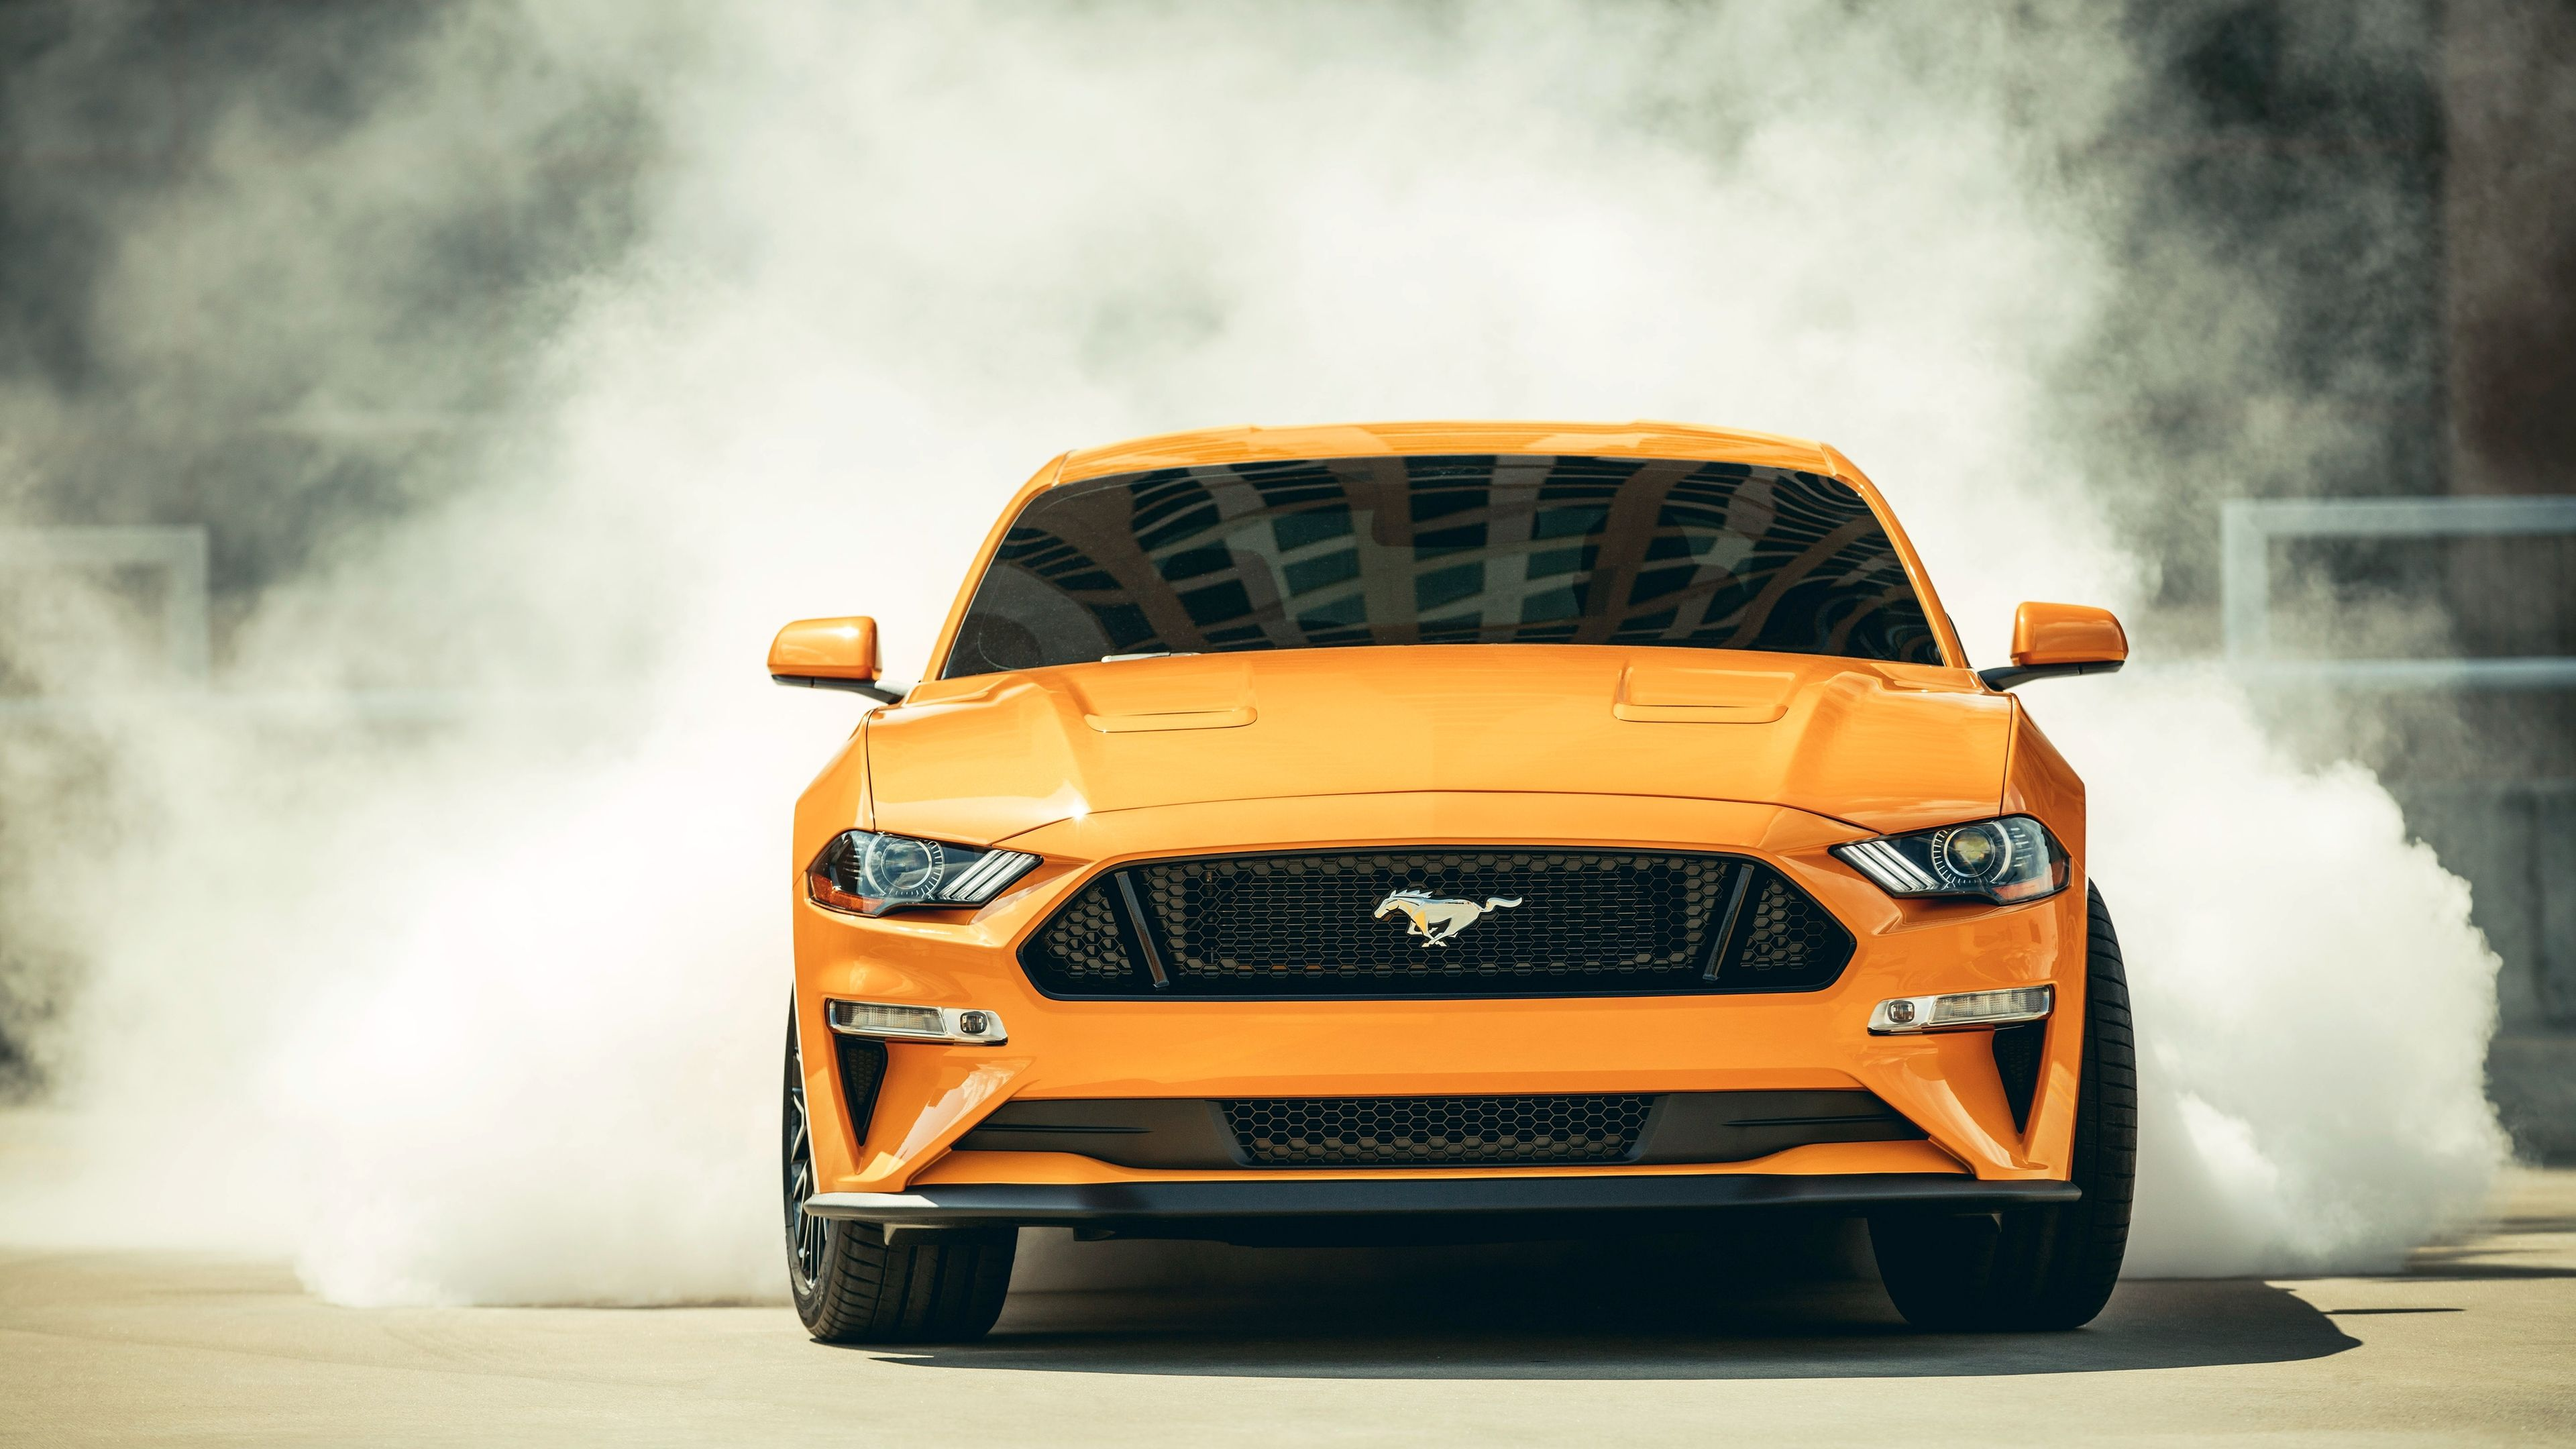 2018 Ford Mustang GT Fastback Front hdwallpapers, ford